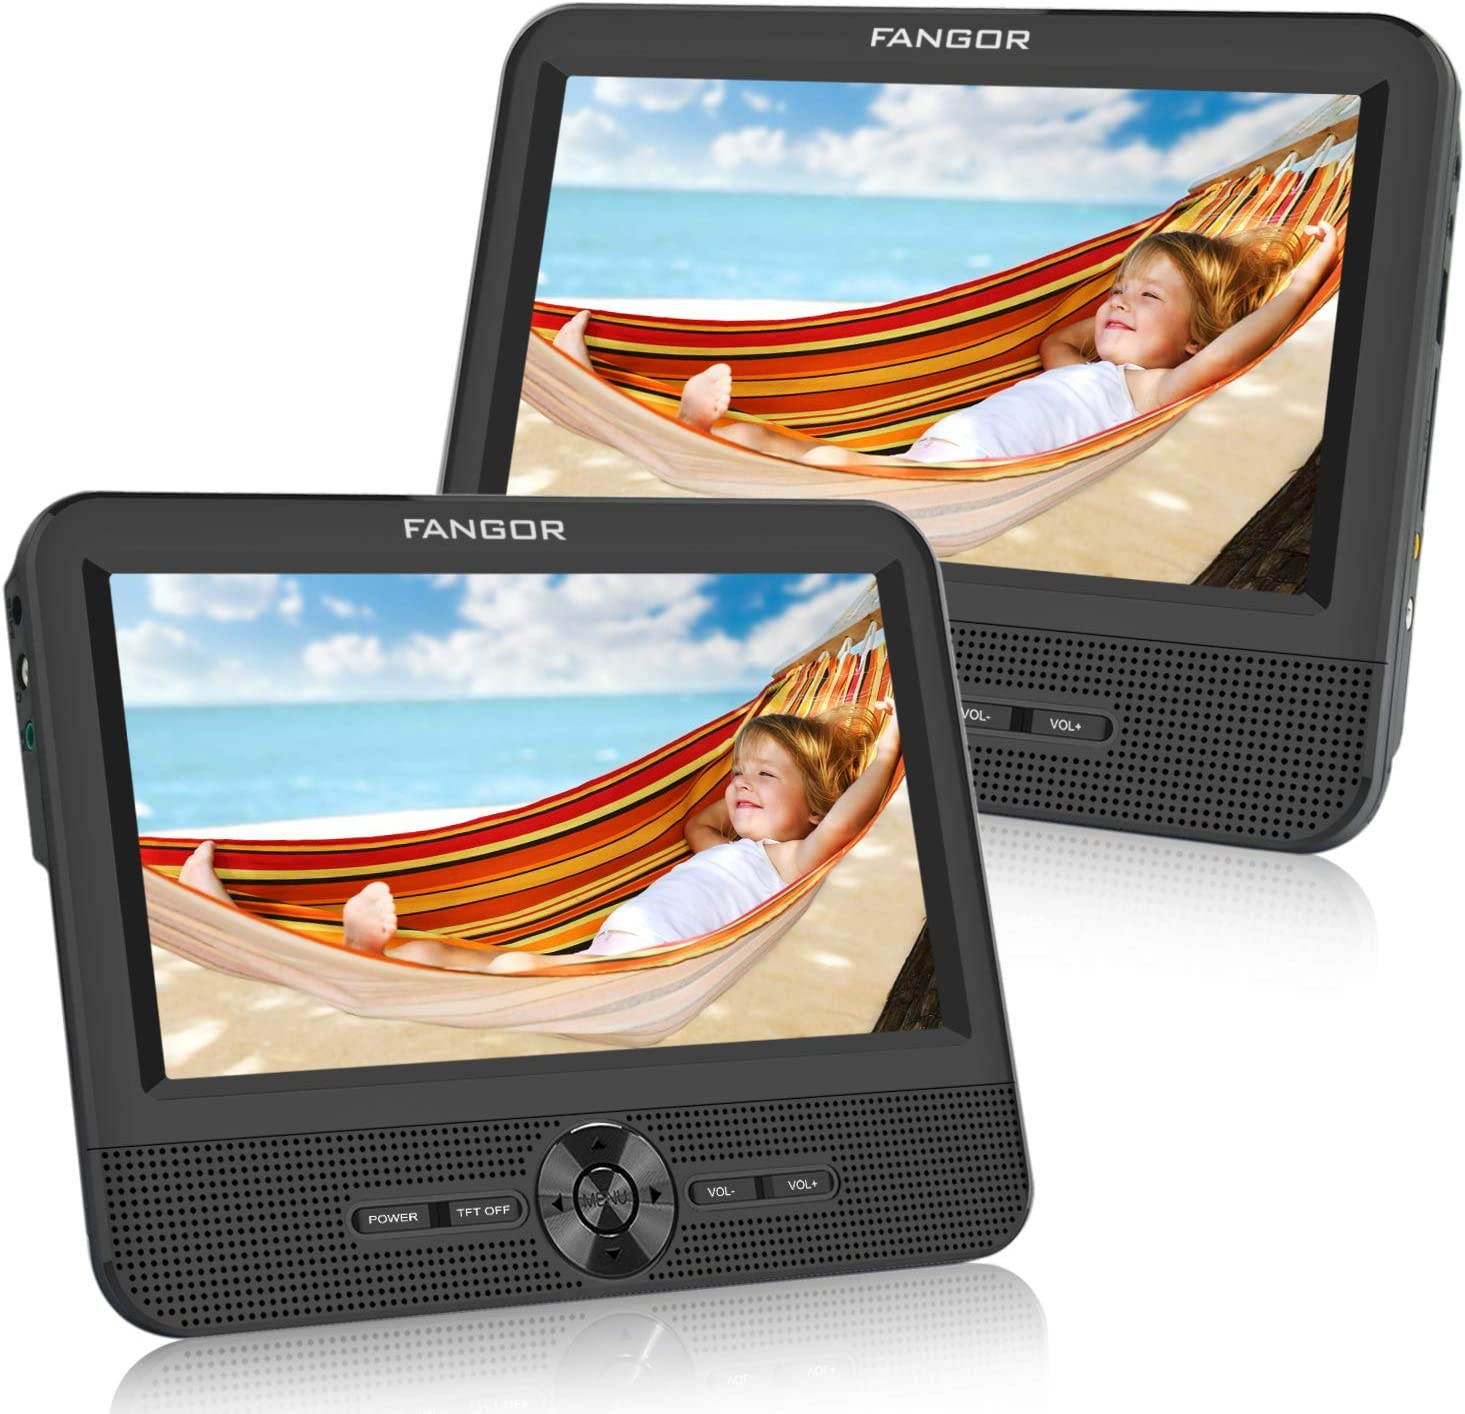 FANGOR 7.5'' Dual Car DVD Player, Headrest Video CD Player with Two Screens, Supported USB/SD/MMC Card Readers, Last Memory and Regions Free